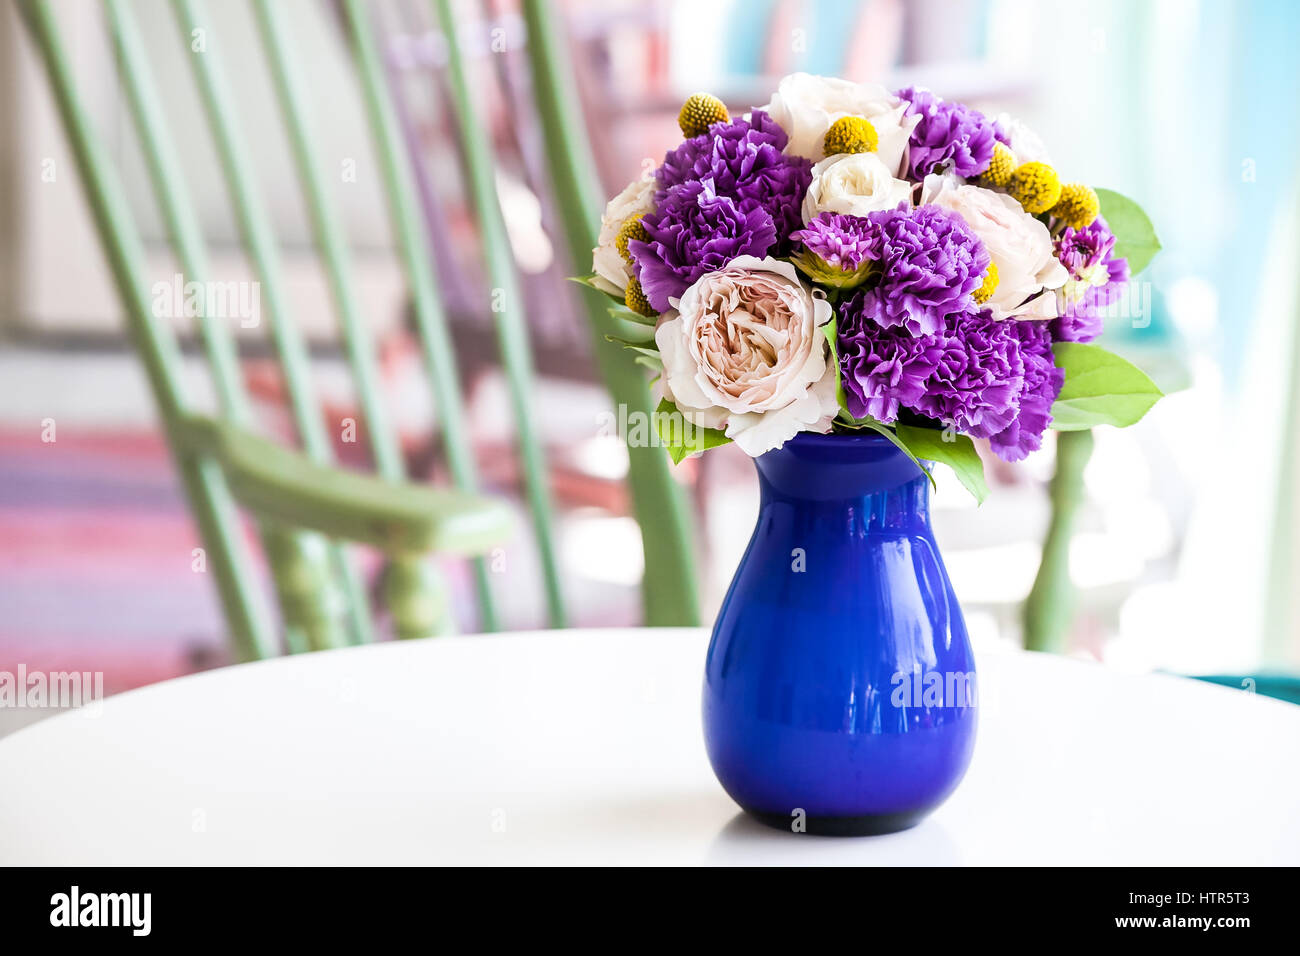 Wedding Bouquet Of Pink And Purple Flowers In Blue Vase Closeup